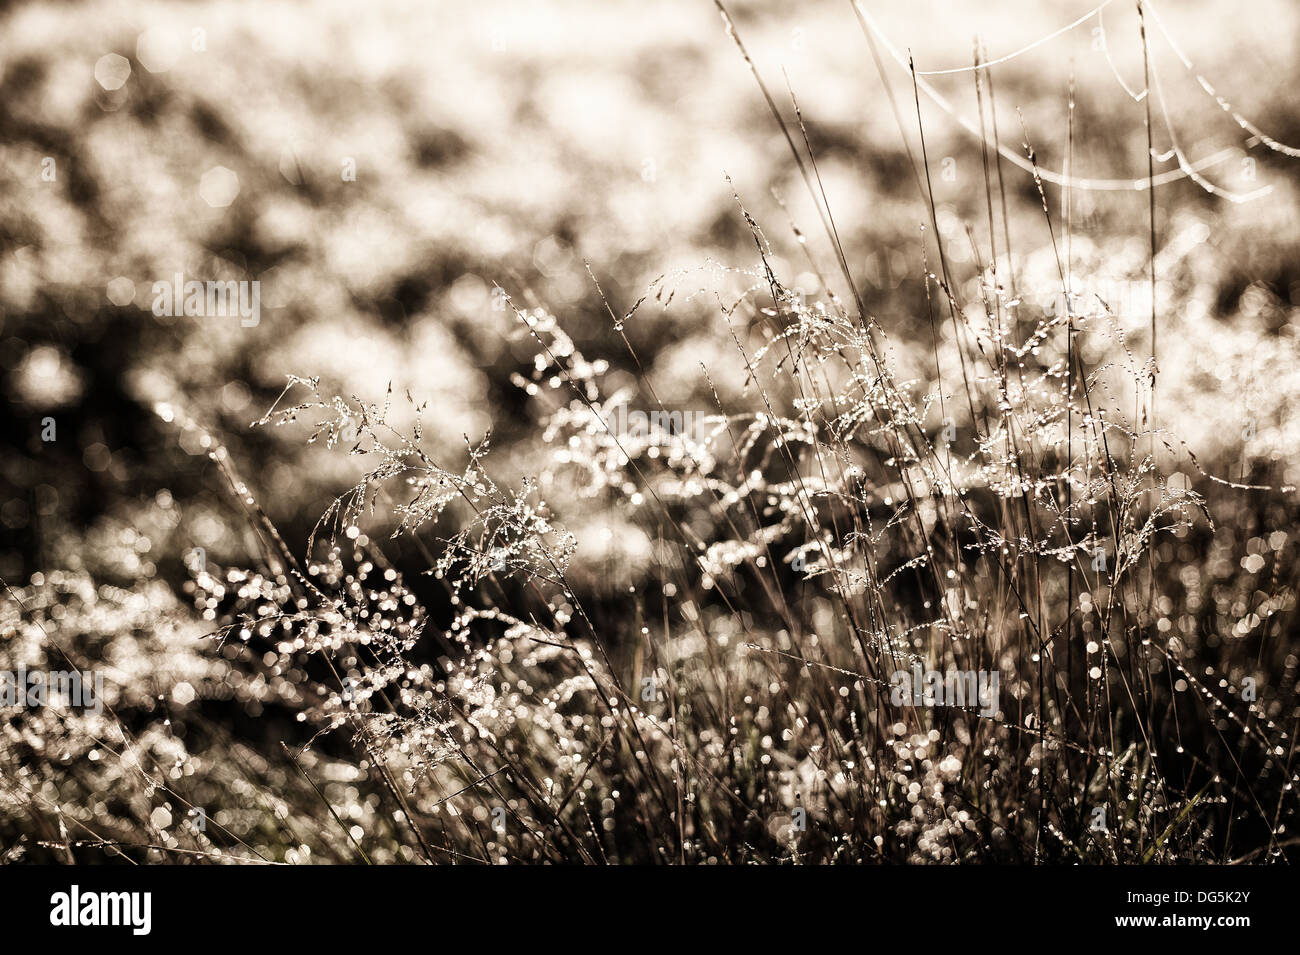 Misty early morning sunrise on backlit meadow dew webs and grasses Poa distans stand out on cold fresh autumn daybreak - Stock Image